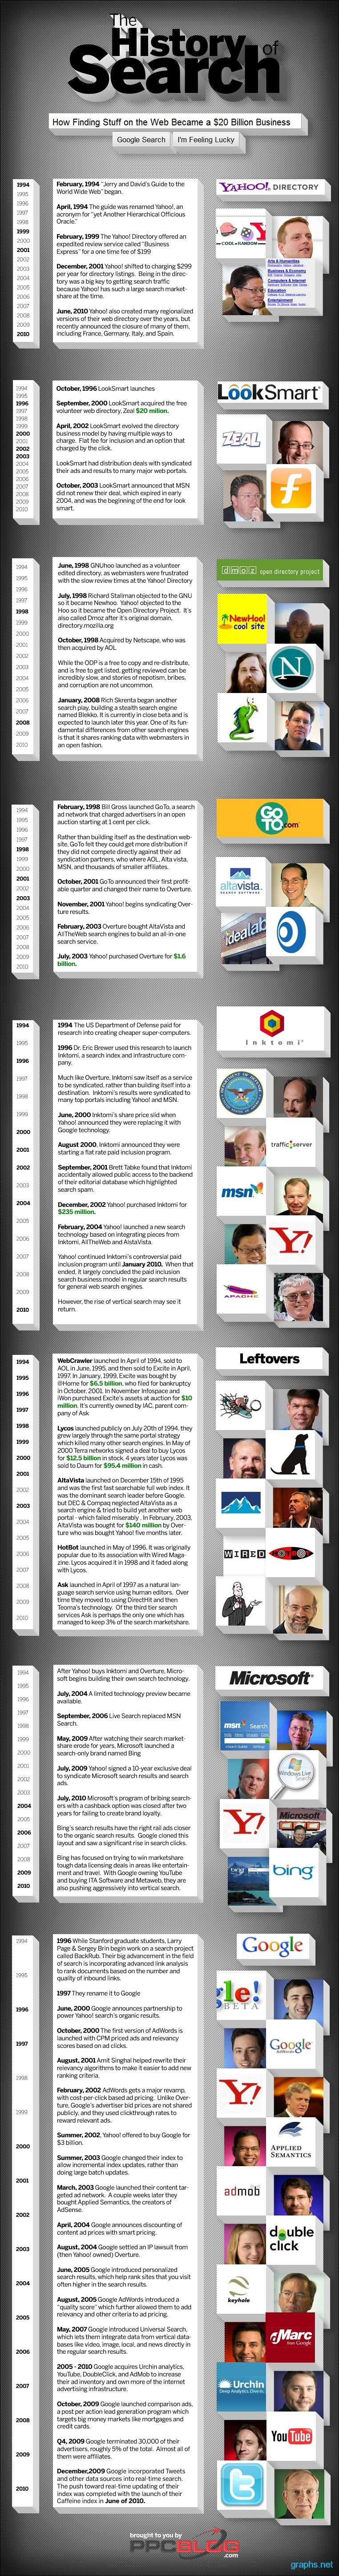 Search Engine Evolution History